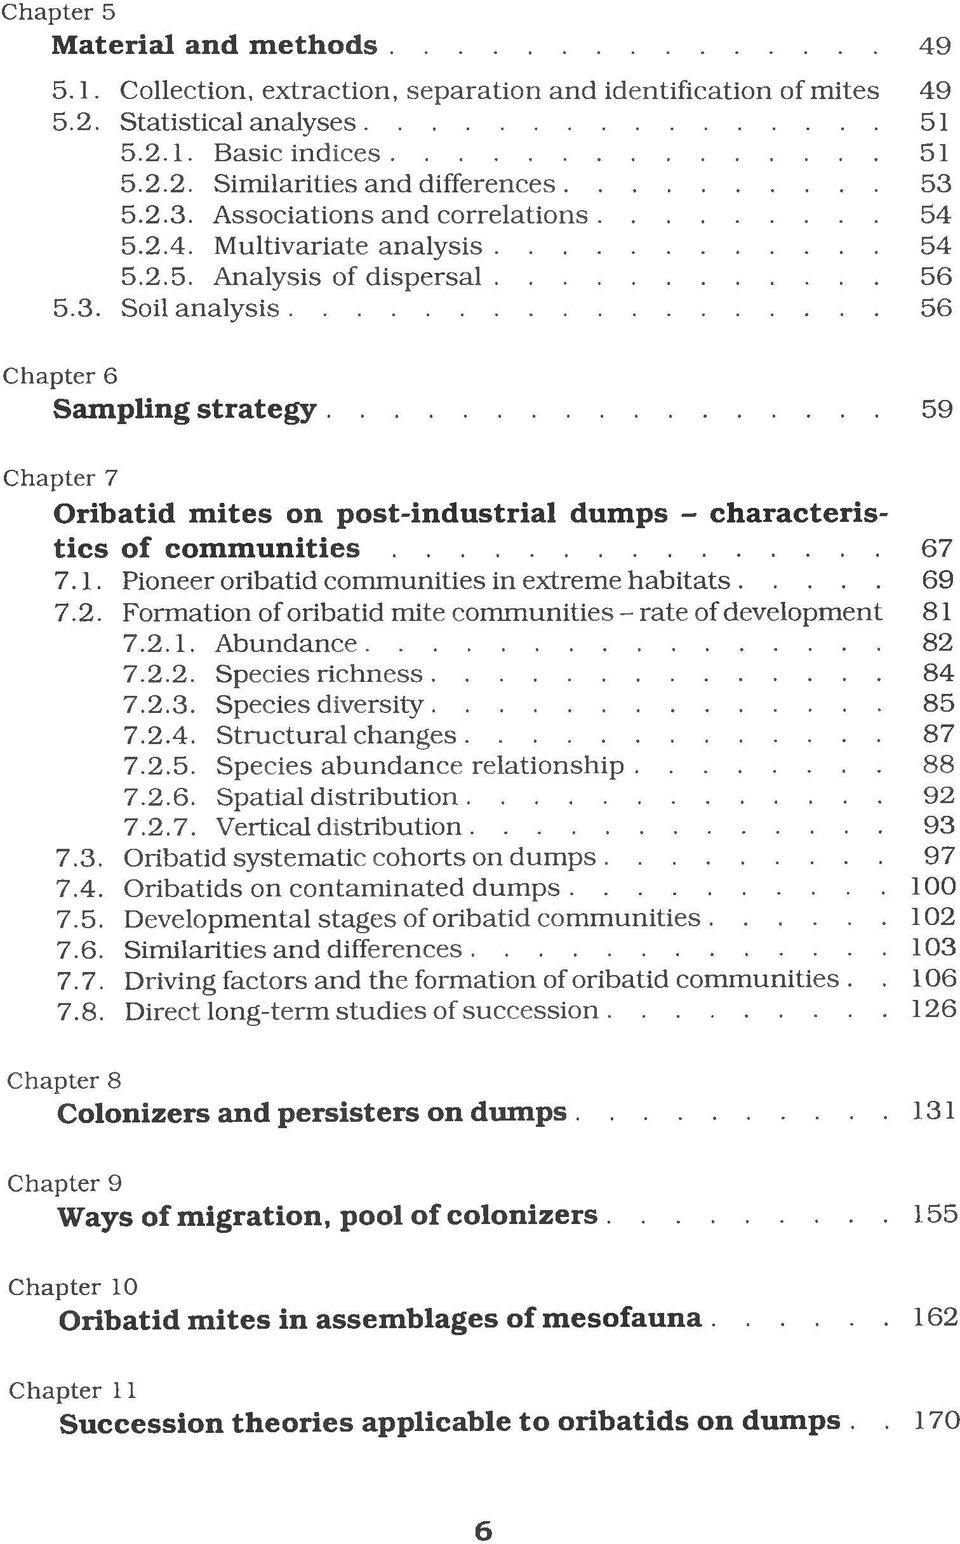 ..59 Chapter 7 Oribatid mites on post-industrial dumps - characteristics of c o m m u n itie s...67 7.1. Pioneer oribatid communities in extreme habitats... 69 7.2.